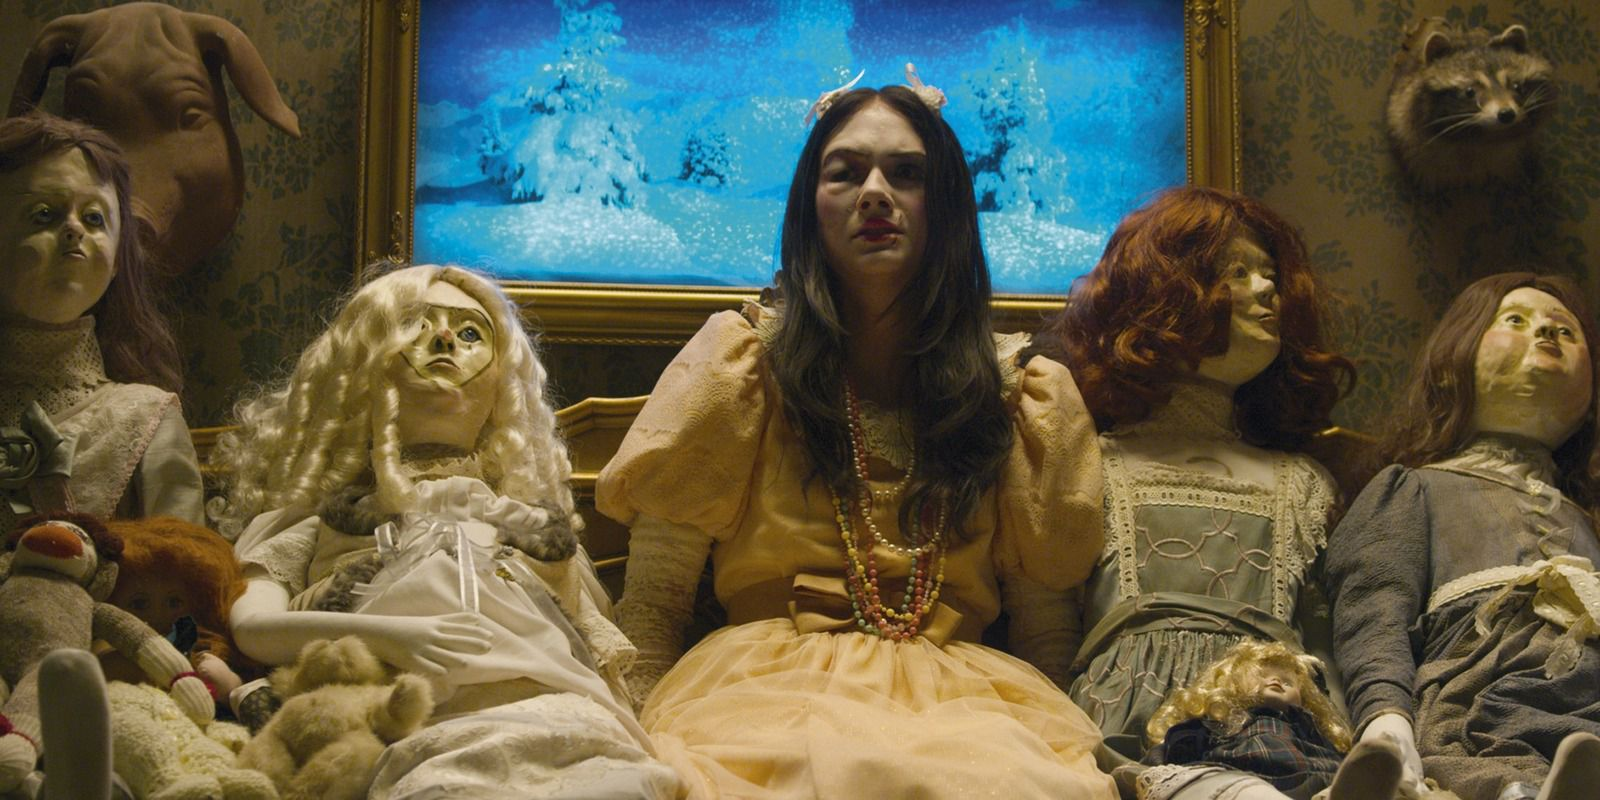 GHOSTLAND | Critique résiliente